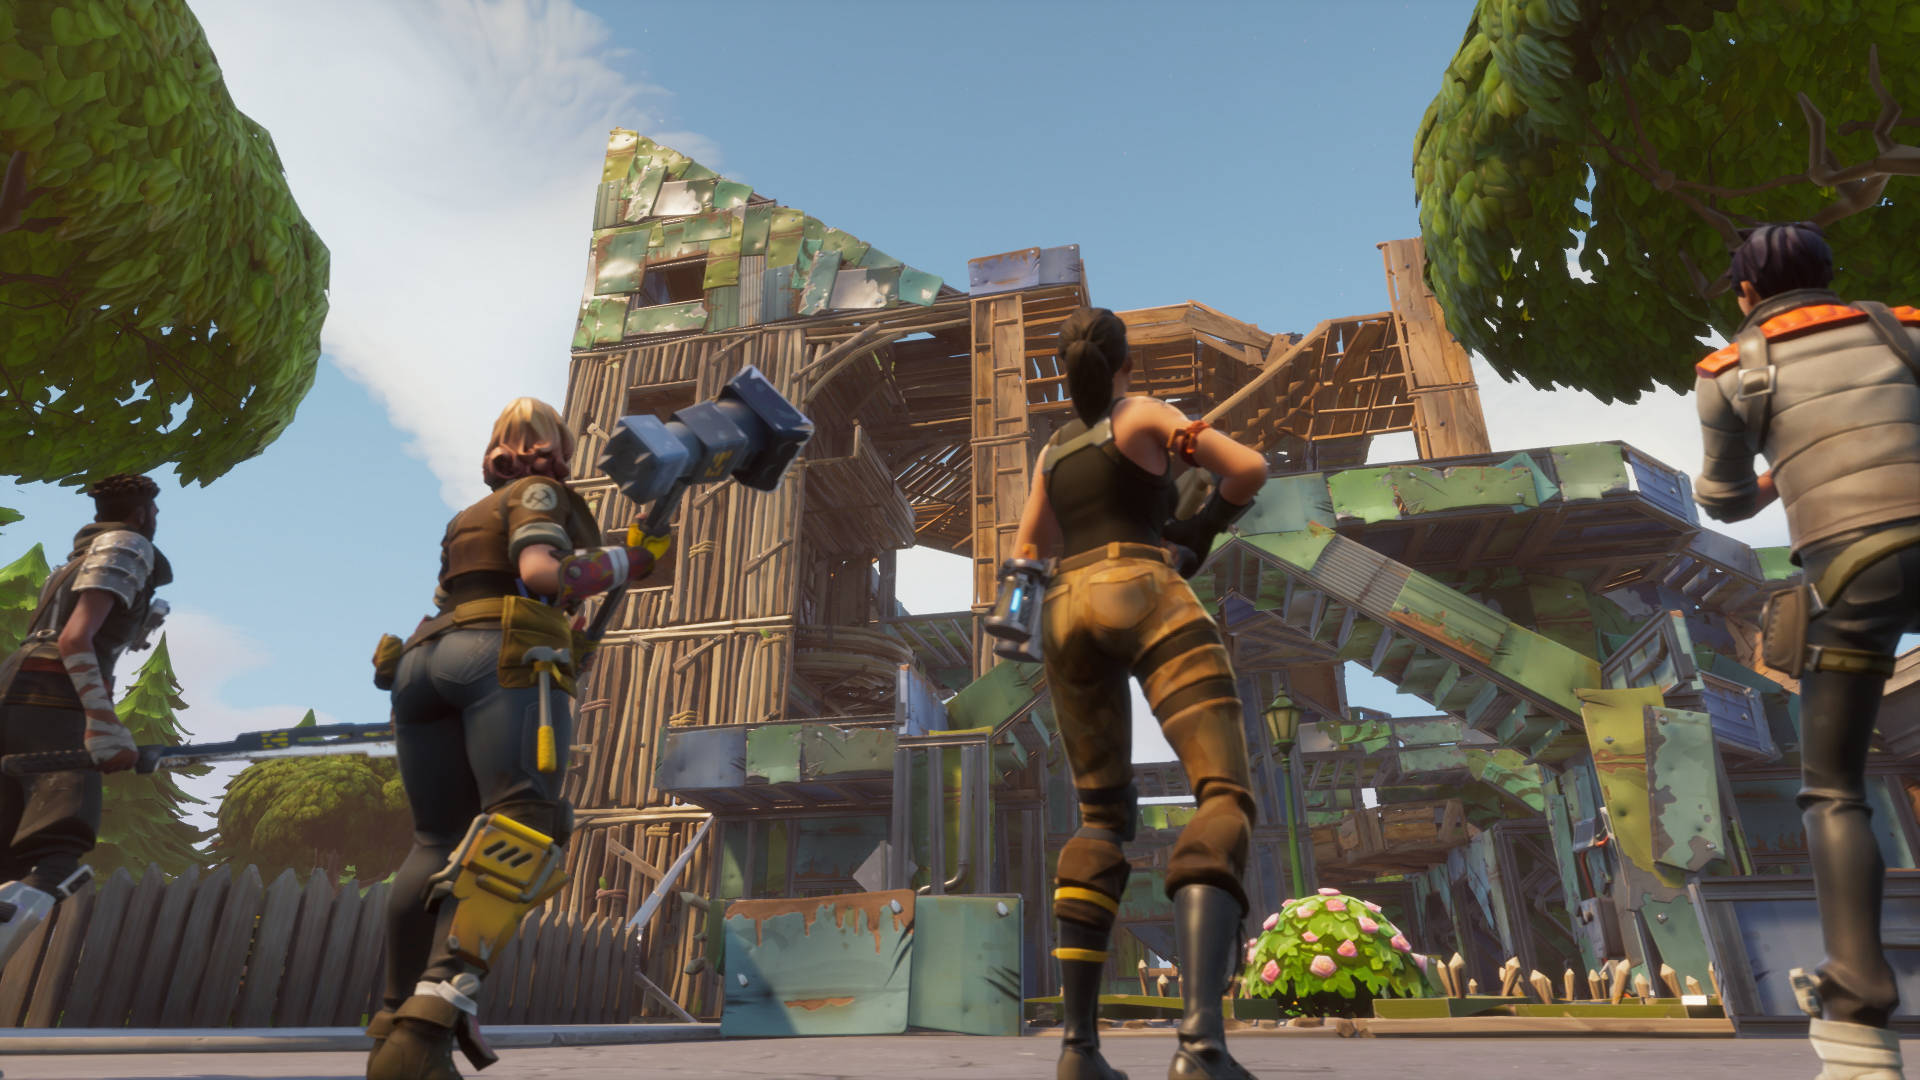 Fortnite Imspeedygonzales Makes Building And Editing